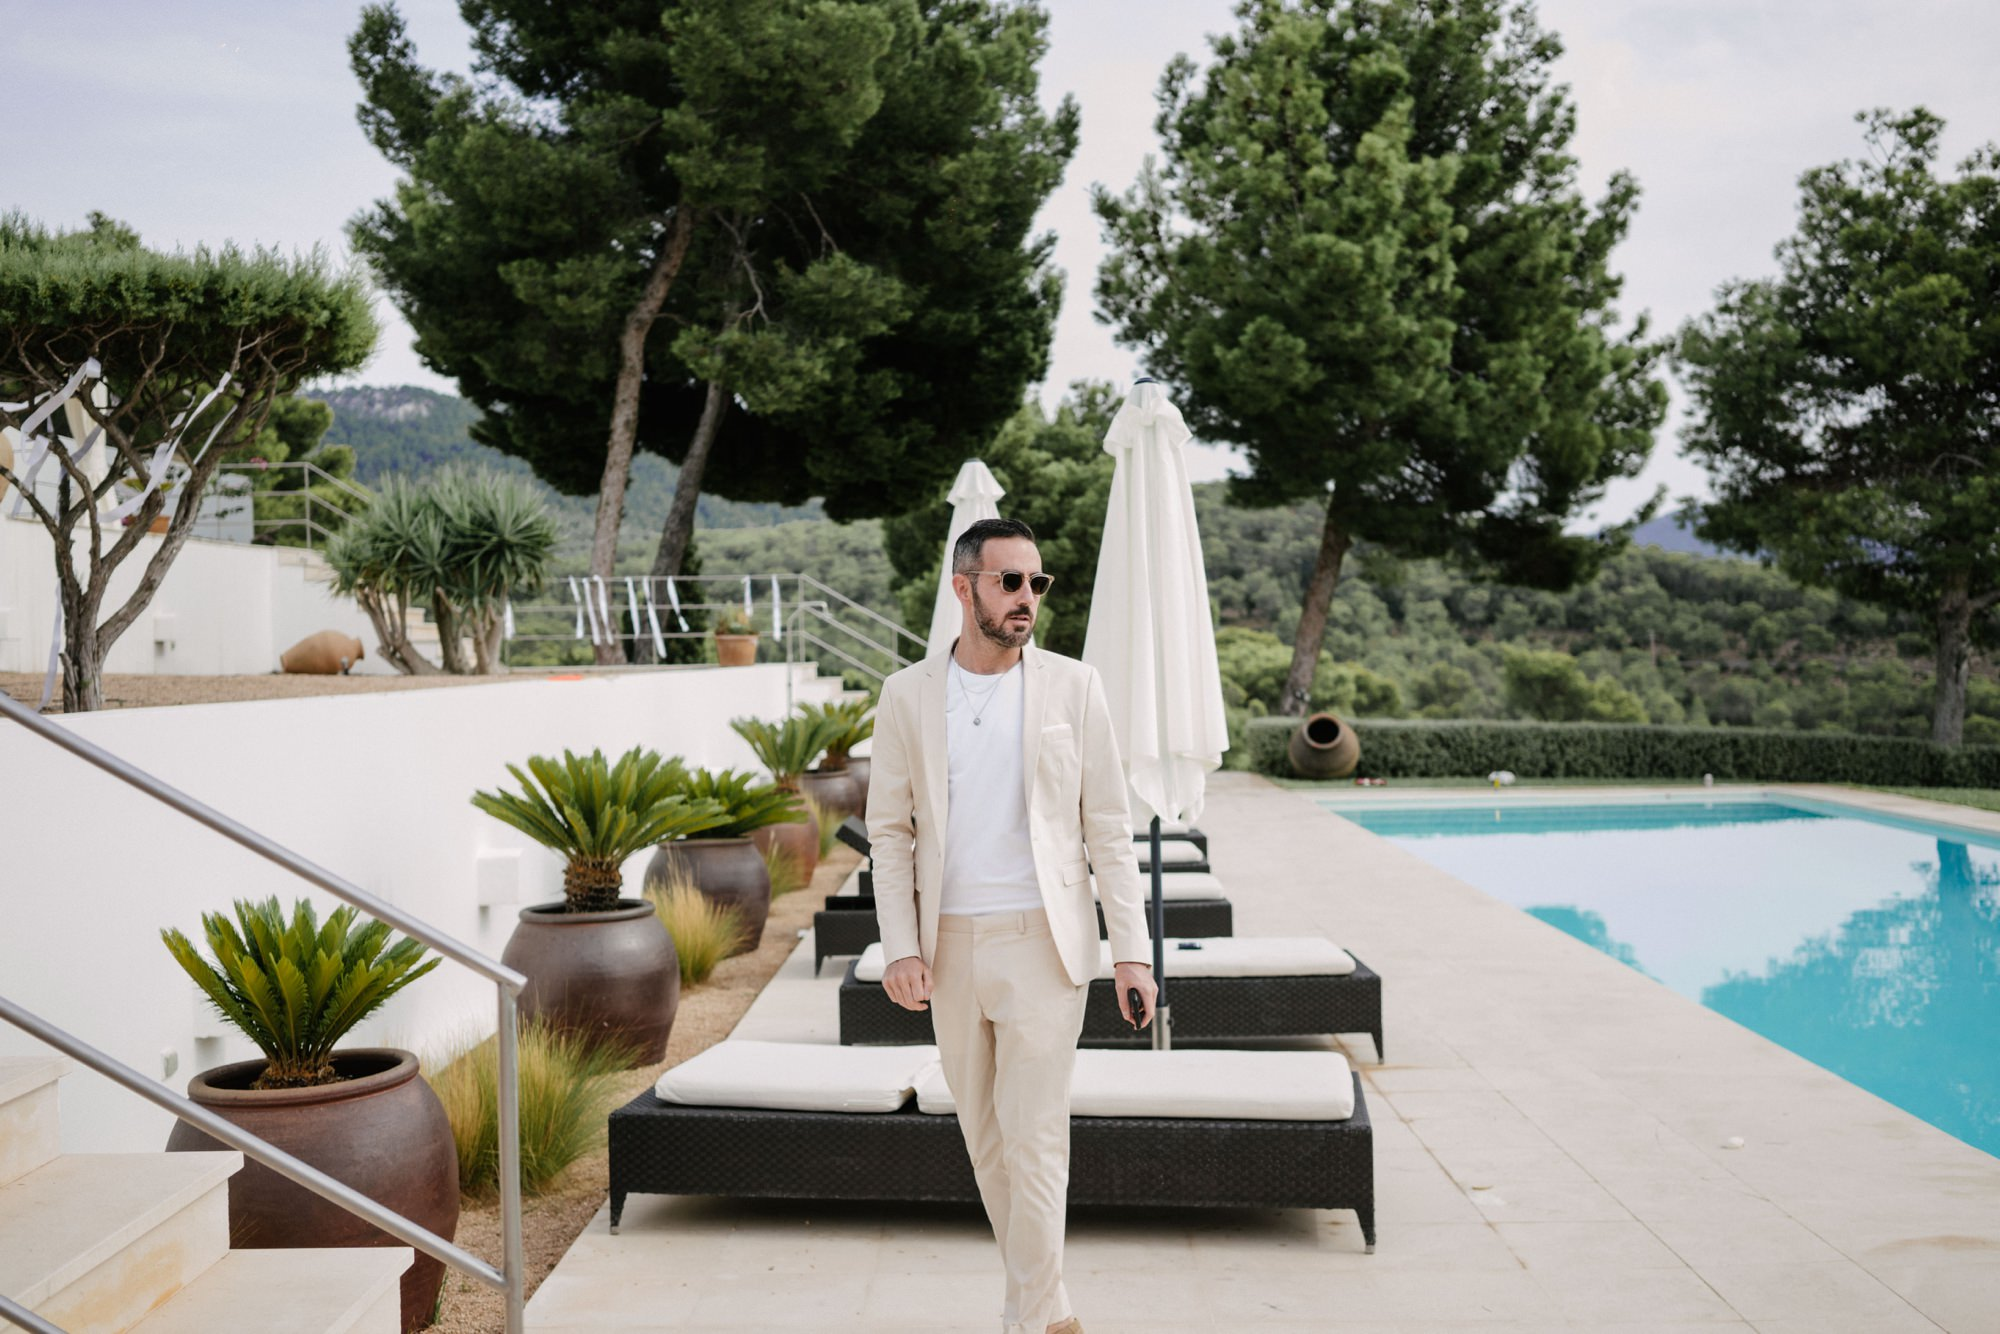 natural wedding photo destination ibiza 0021 1